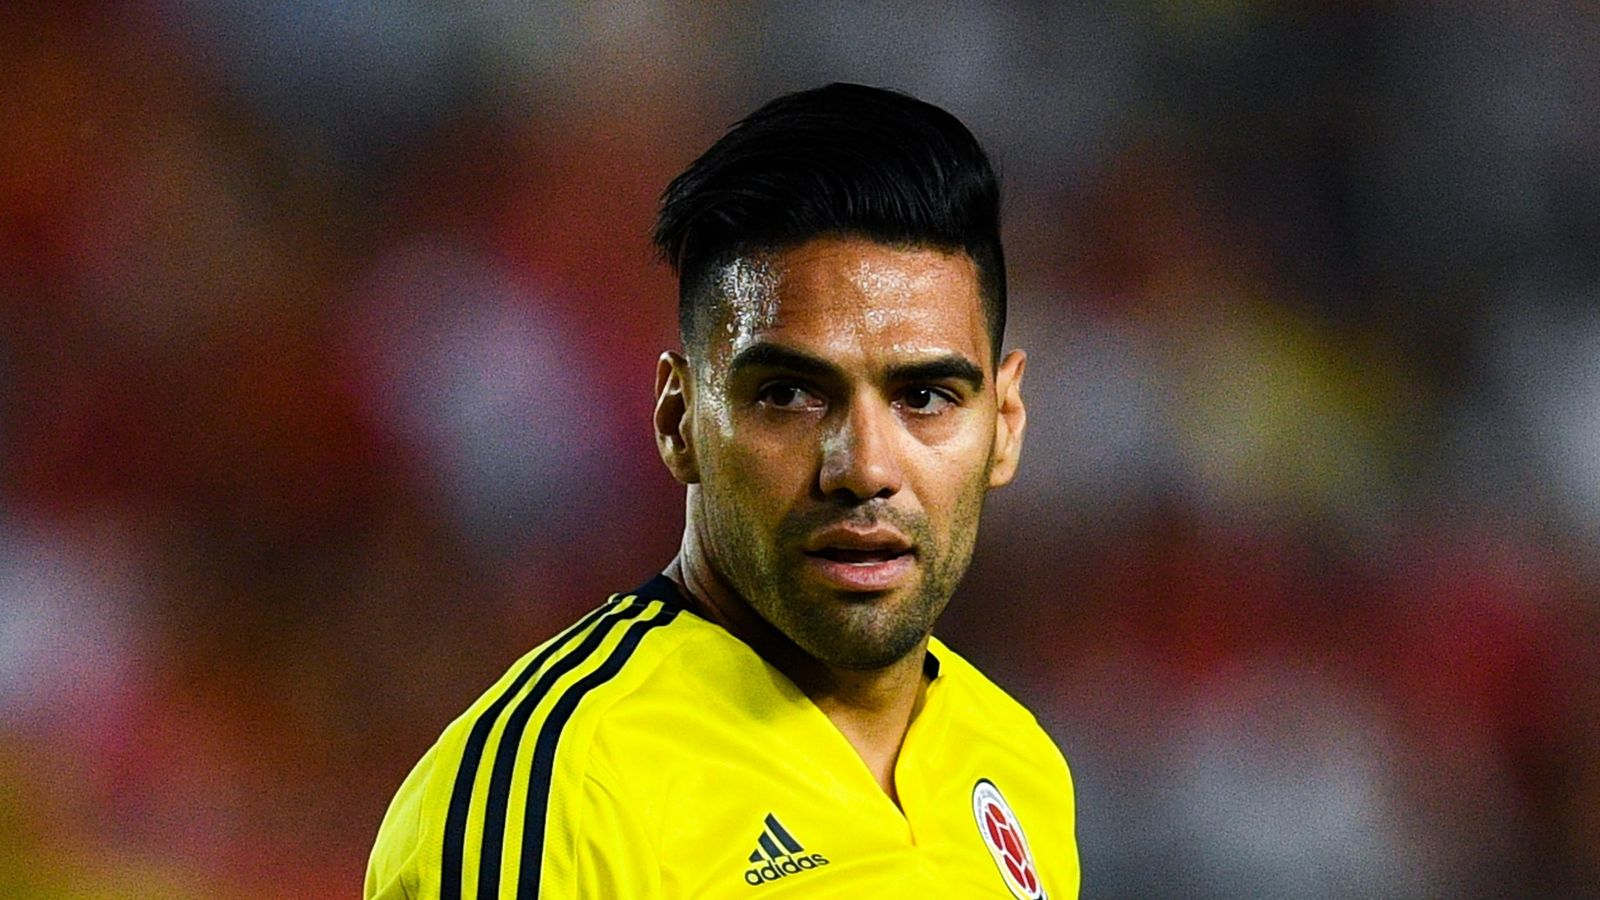 Colombia's Radamel Falcao admits discussing draw with Peru